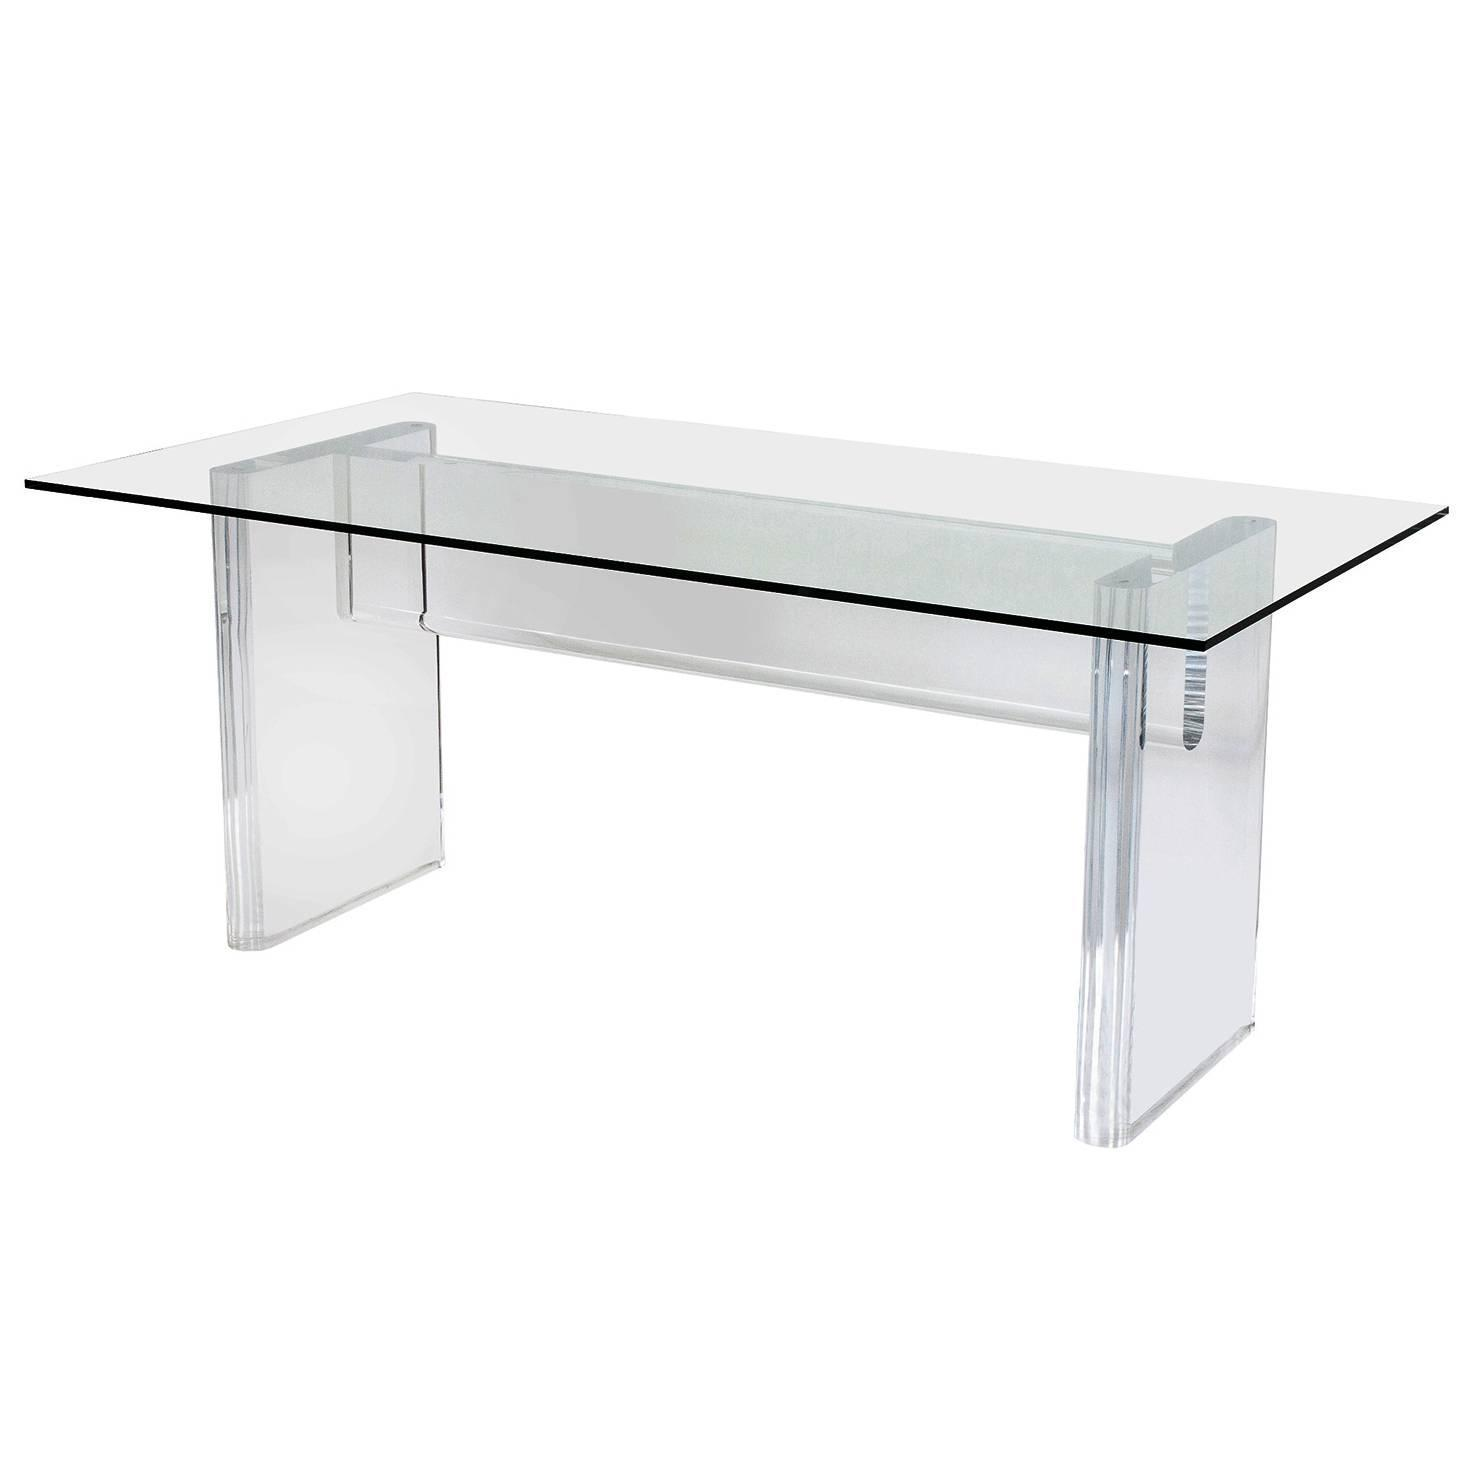 karl springer style thick lucite dining table or desk at 1stdibs